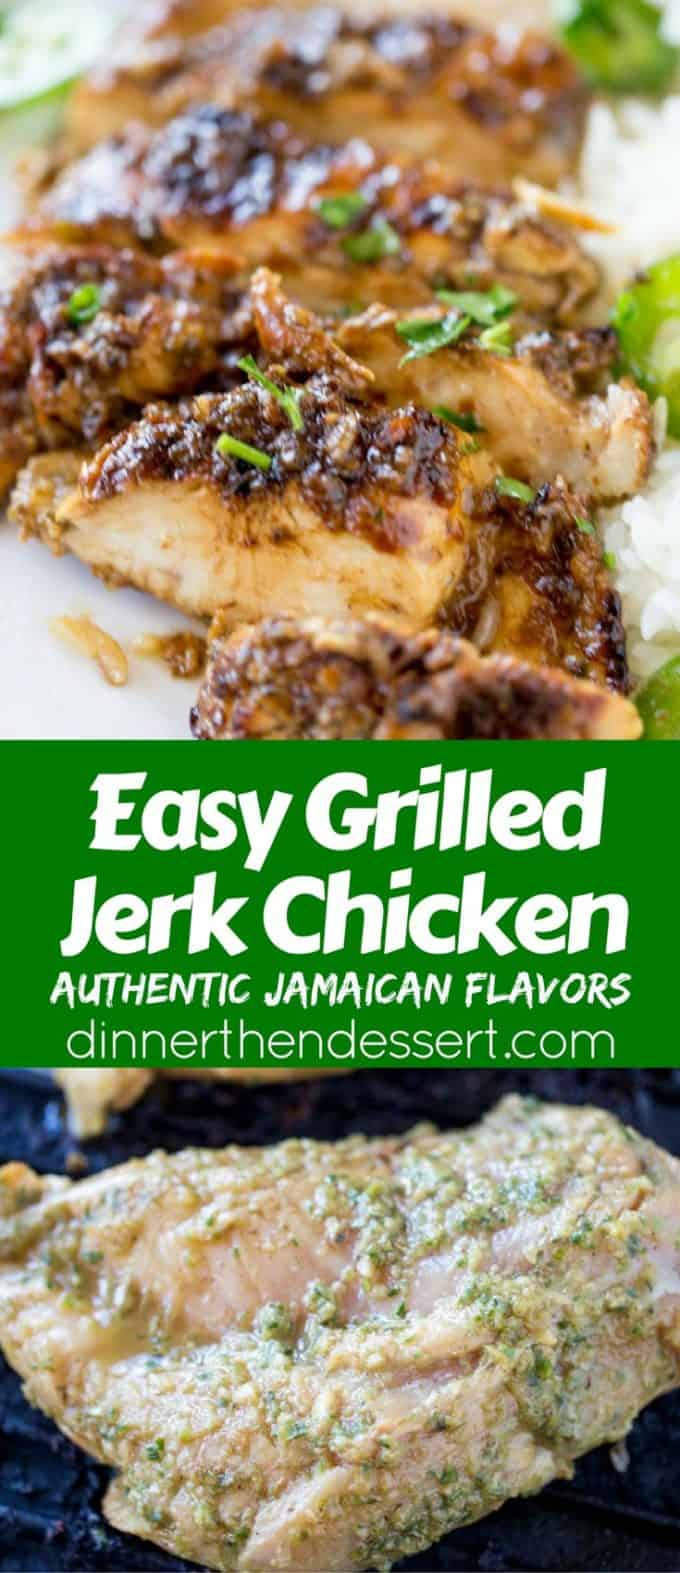 Easy Grilled Jerk Chicken made with a marinade that takes just a few seconds to make is the most flavorful authentic Jamaican chicken you'll grill all summer!